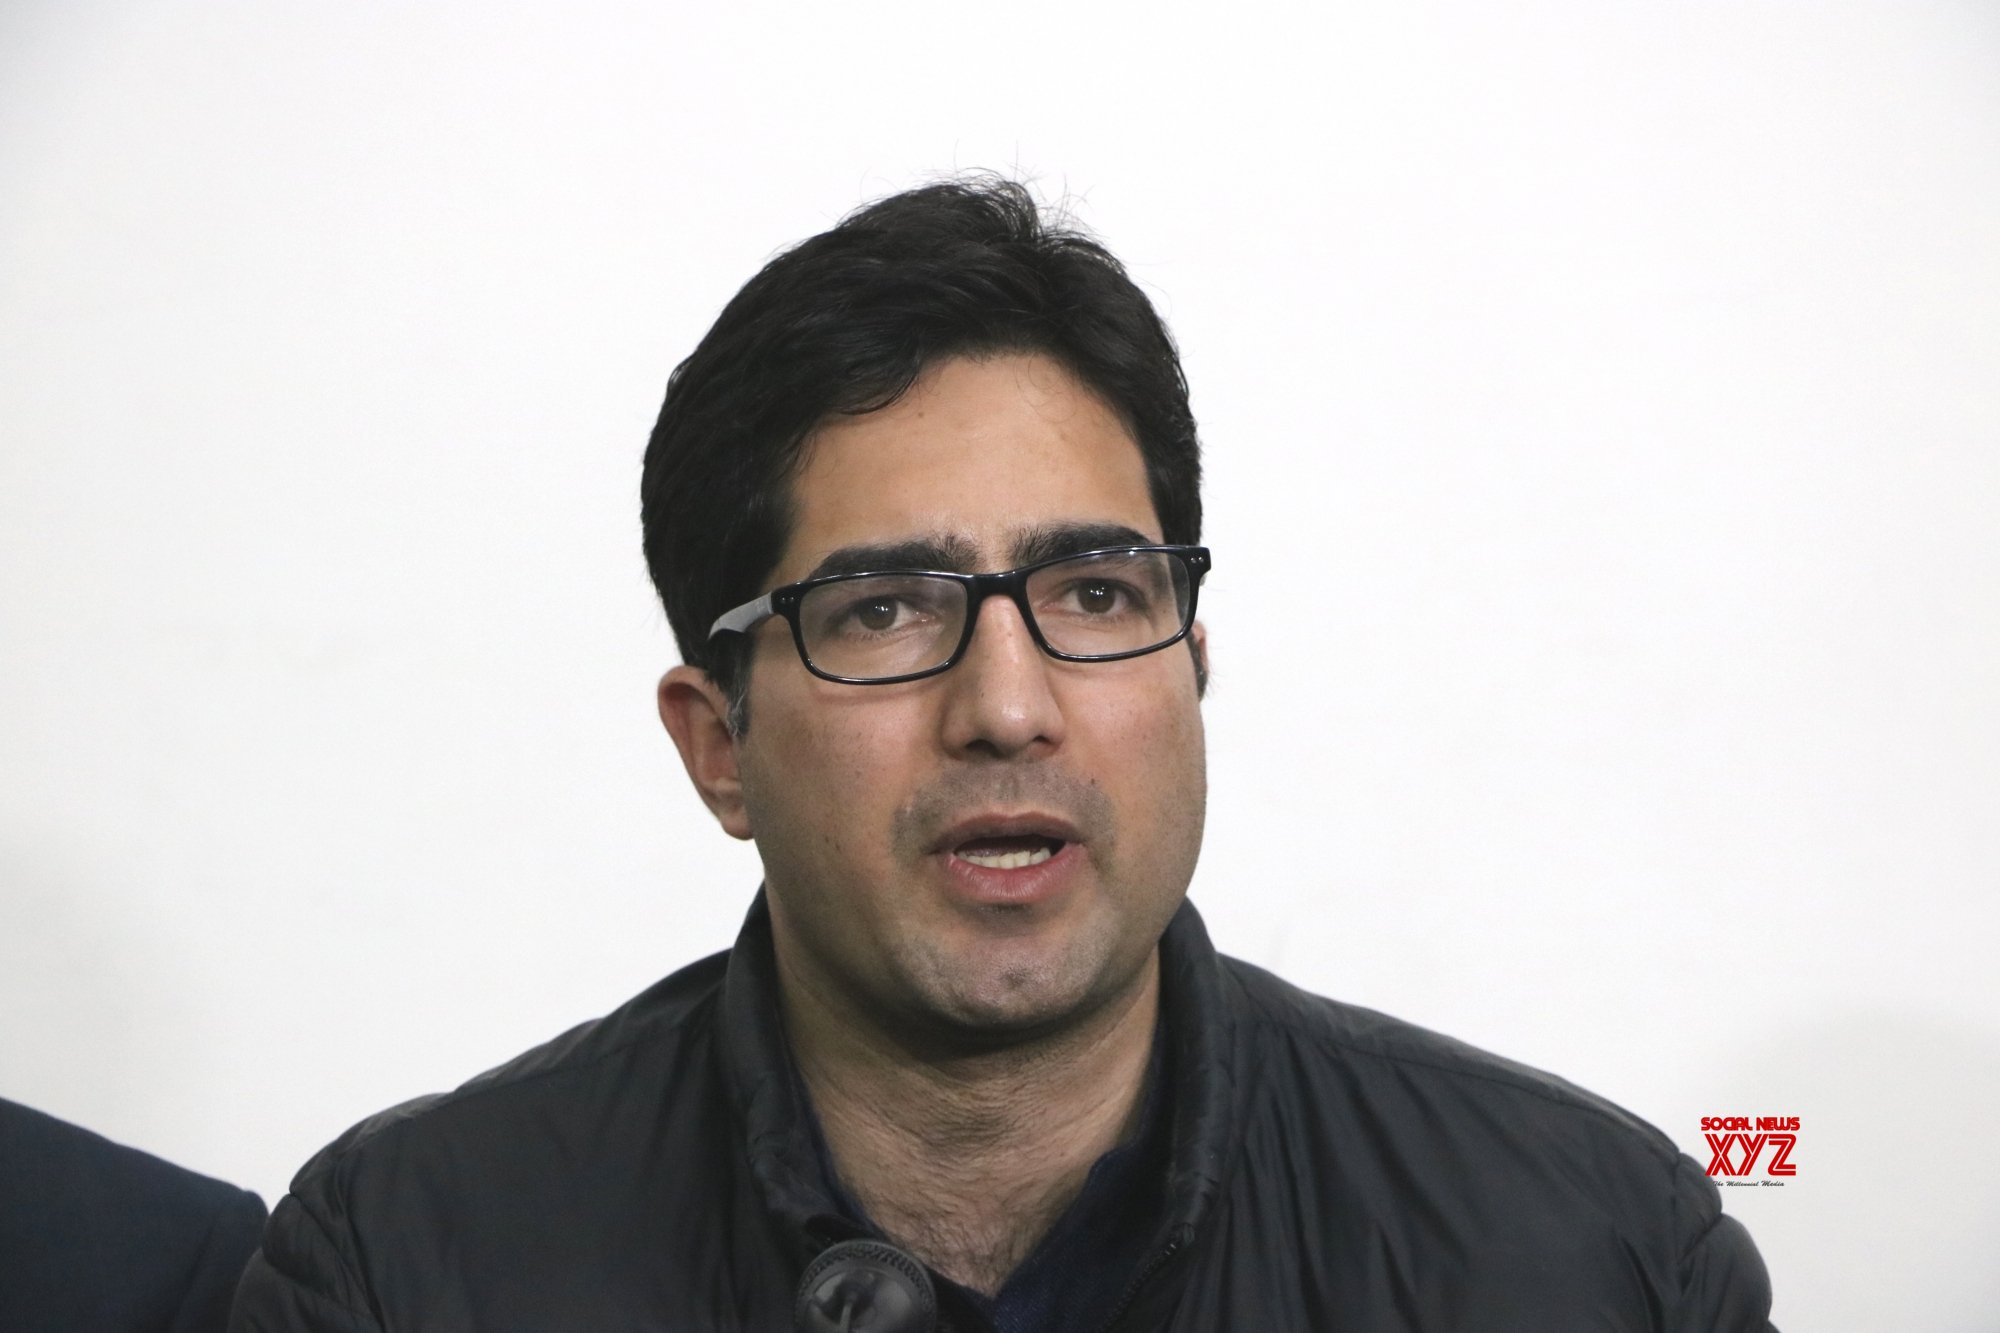 J&K leader Shah Faesal slapped with PSA